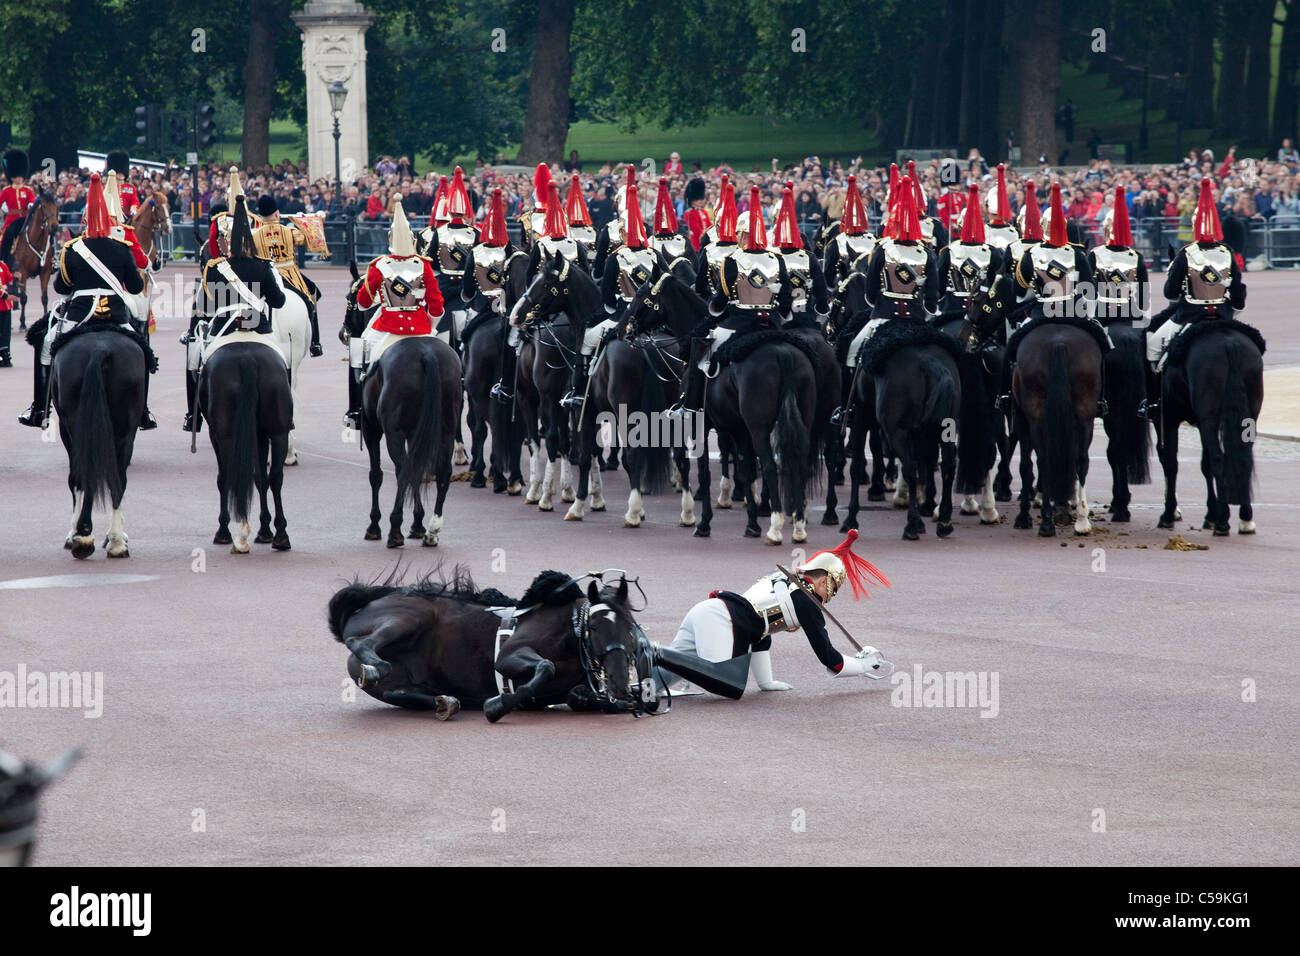 Royals horse Guard falls off horse at Trooping the Colour ceremony in London June 11, 2011. - Stock Image